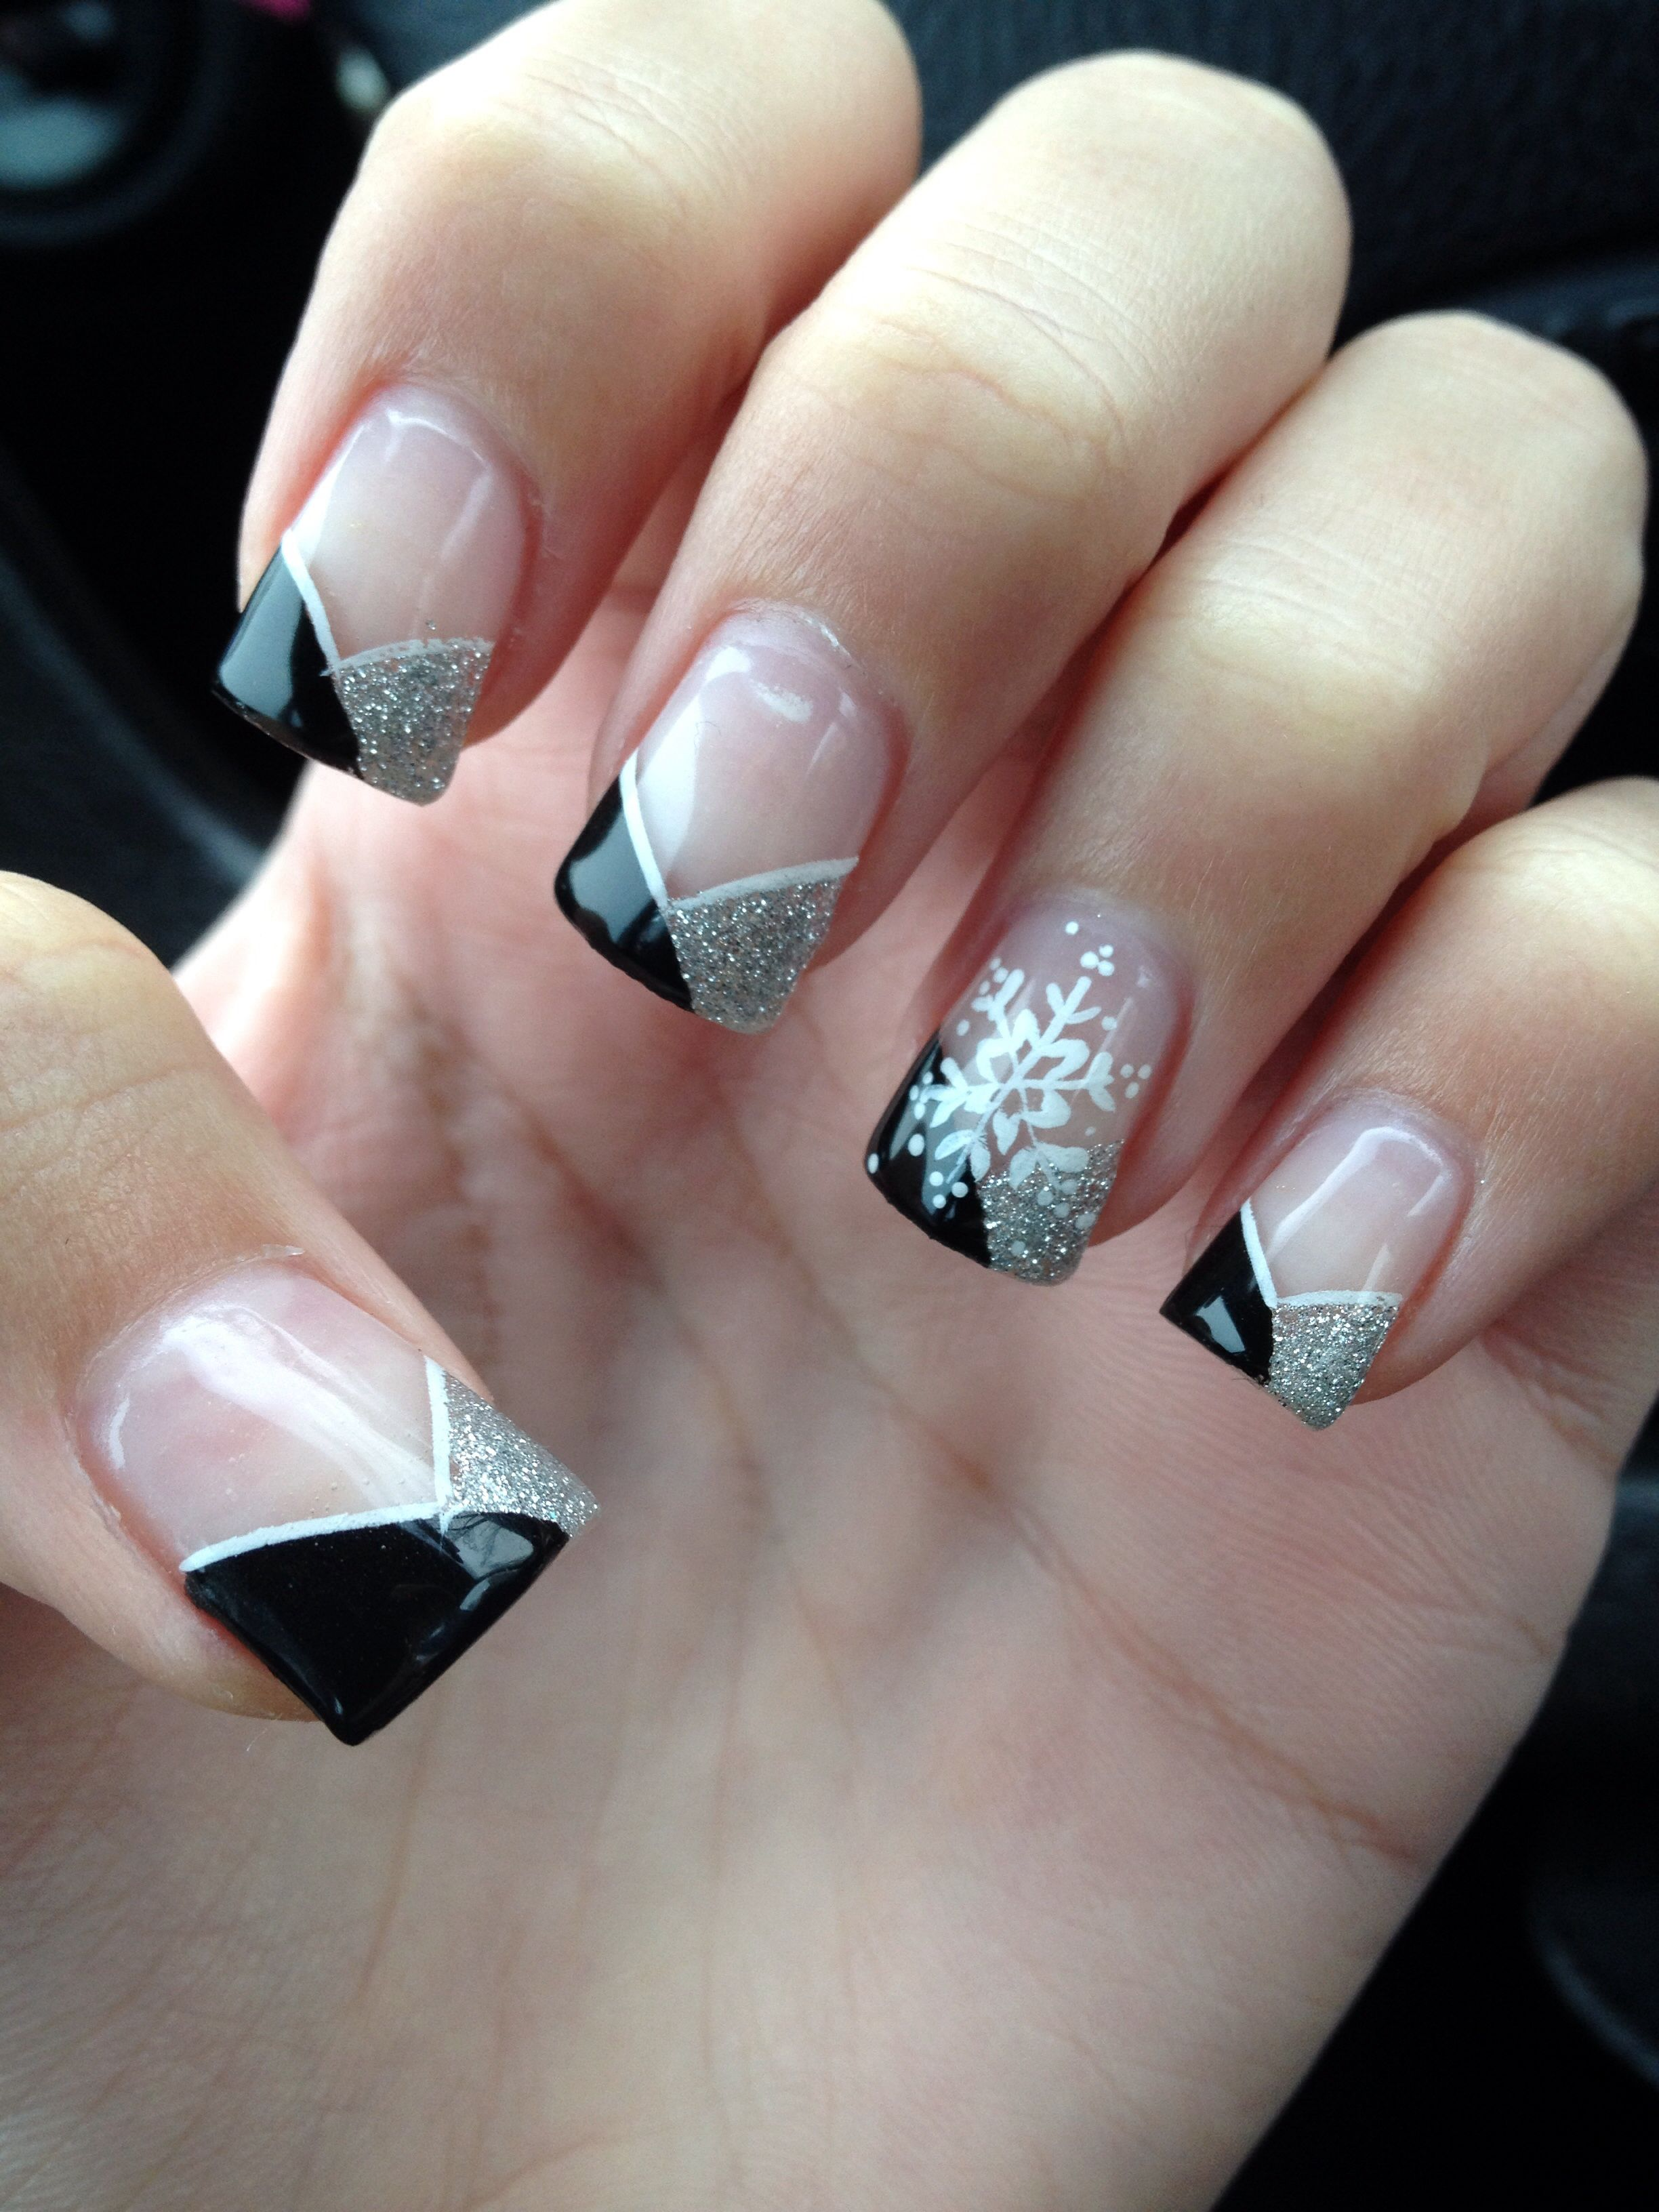 December nails! For January? | Nail inspiration | Pinterest ...